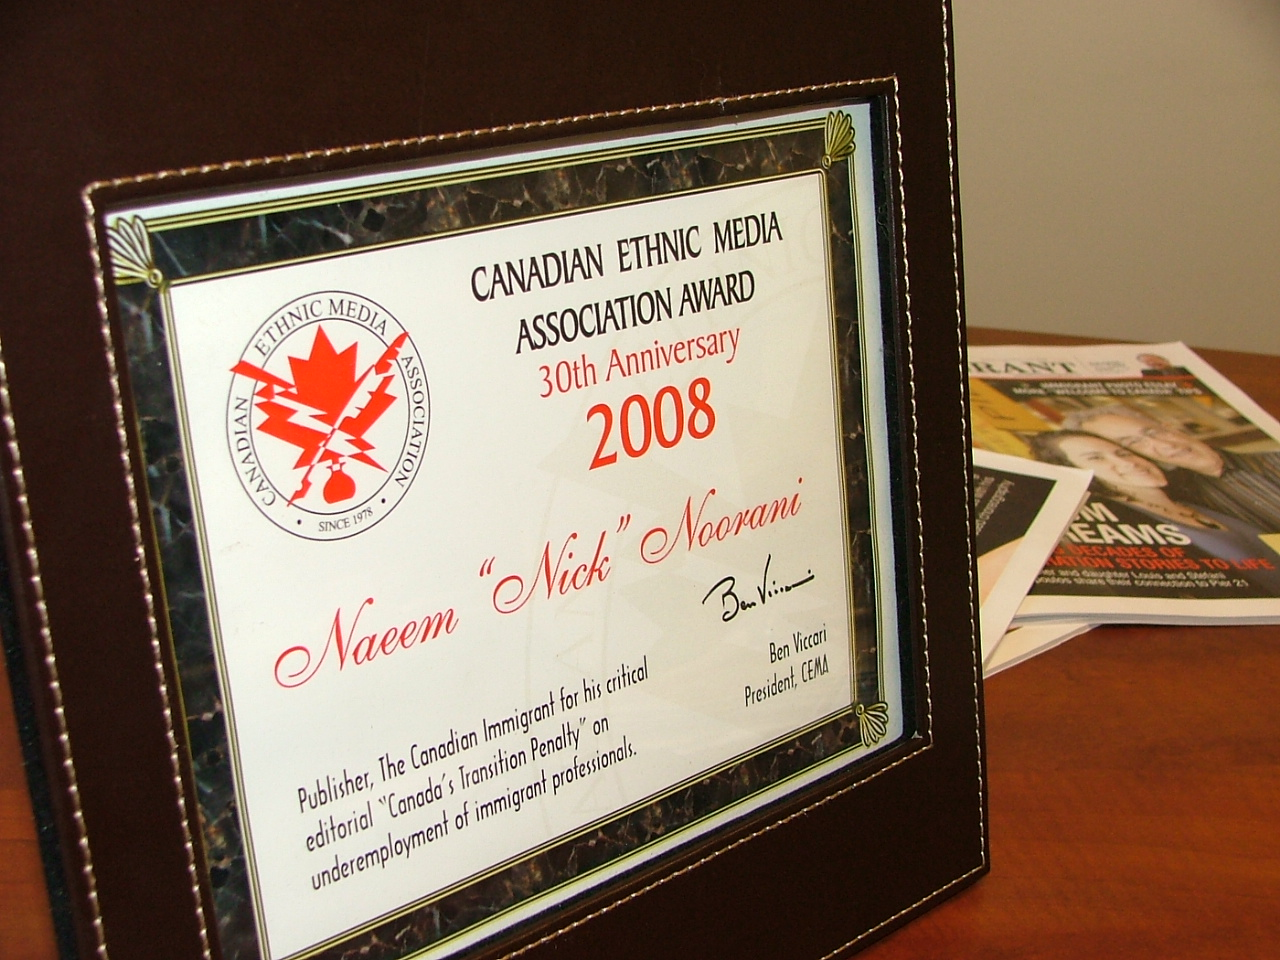 Canadian Ethnic Media award for best editorial